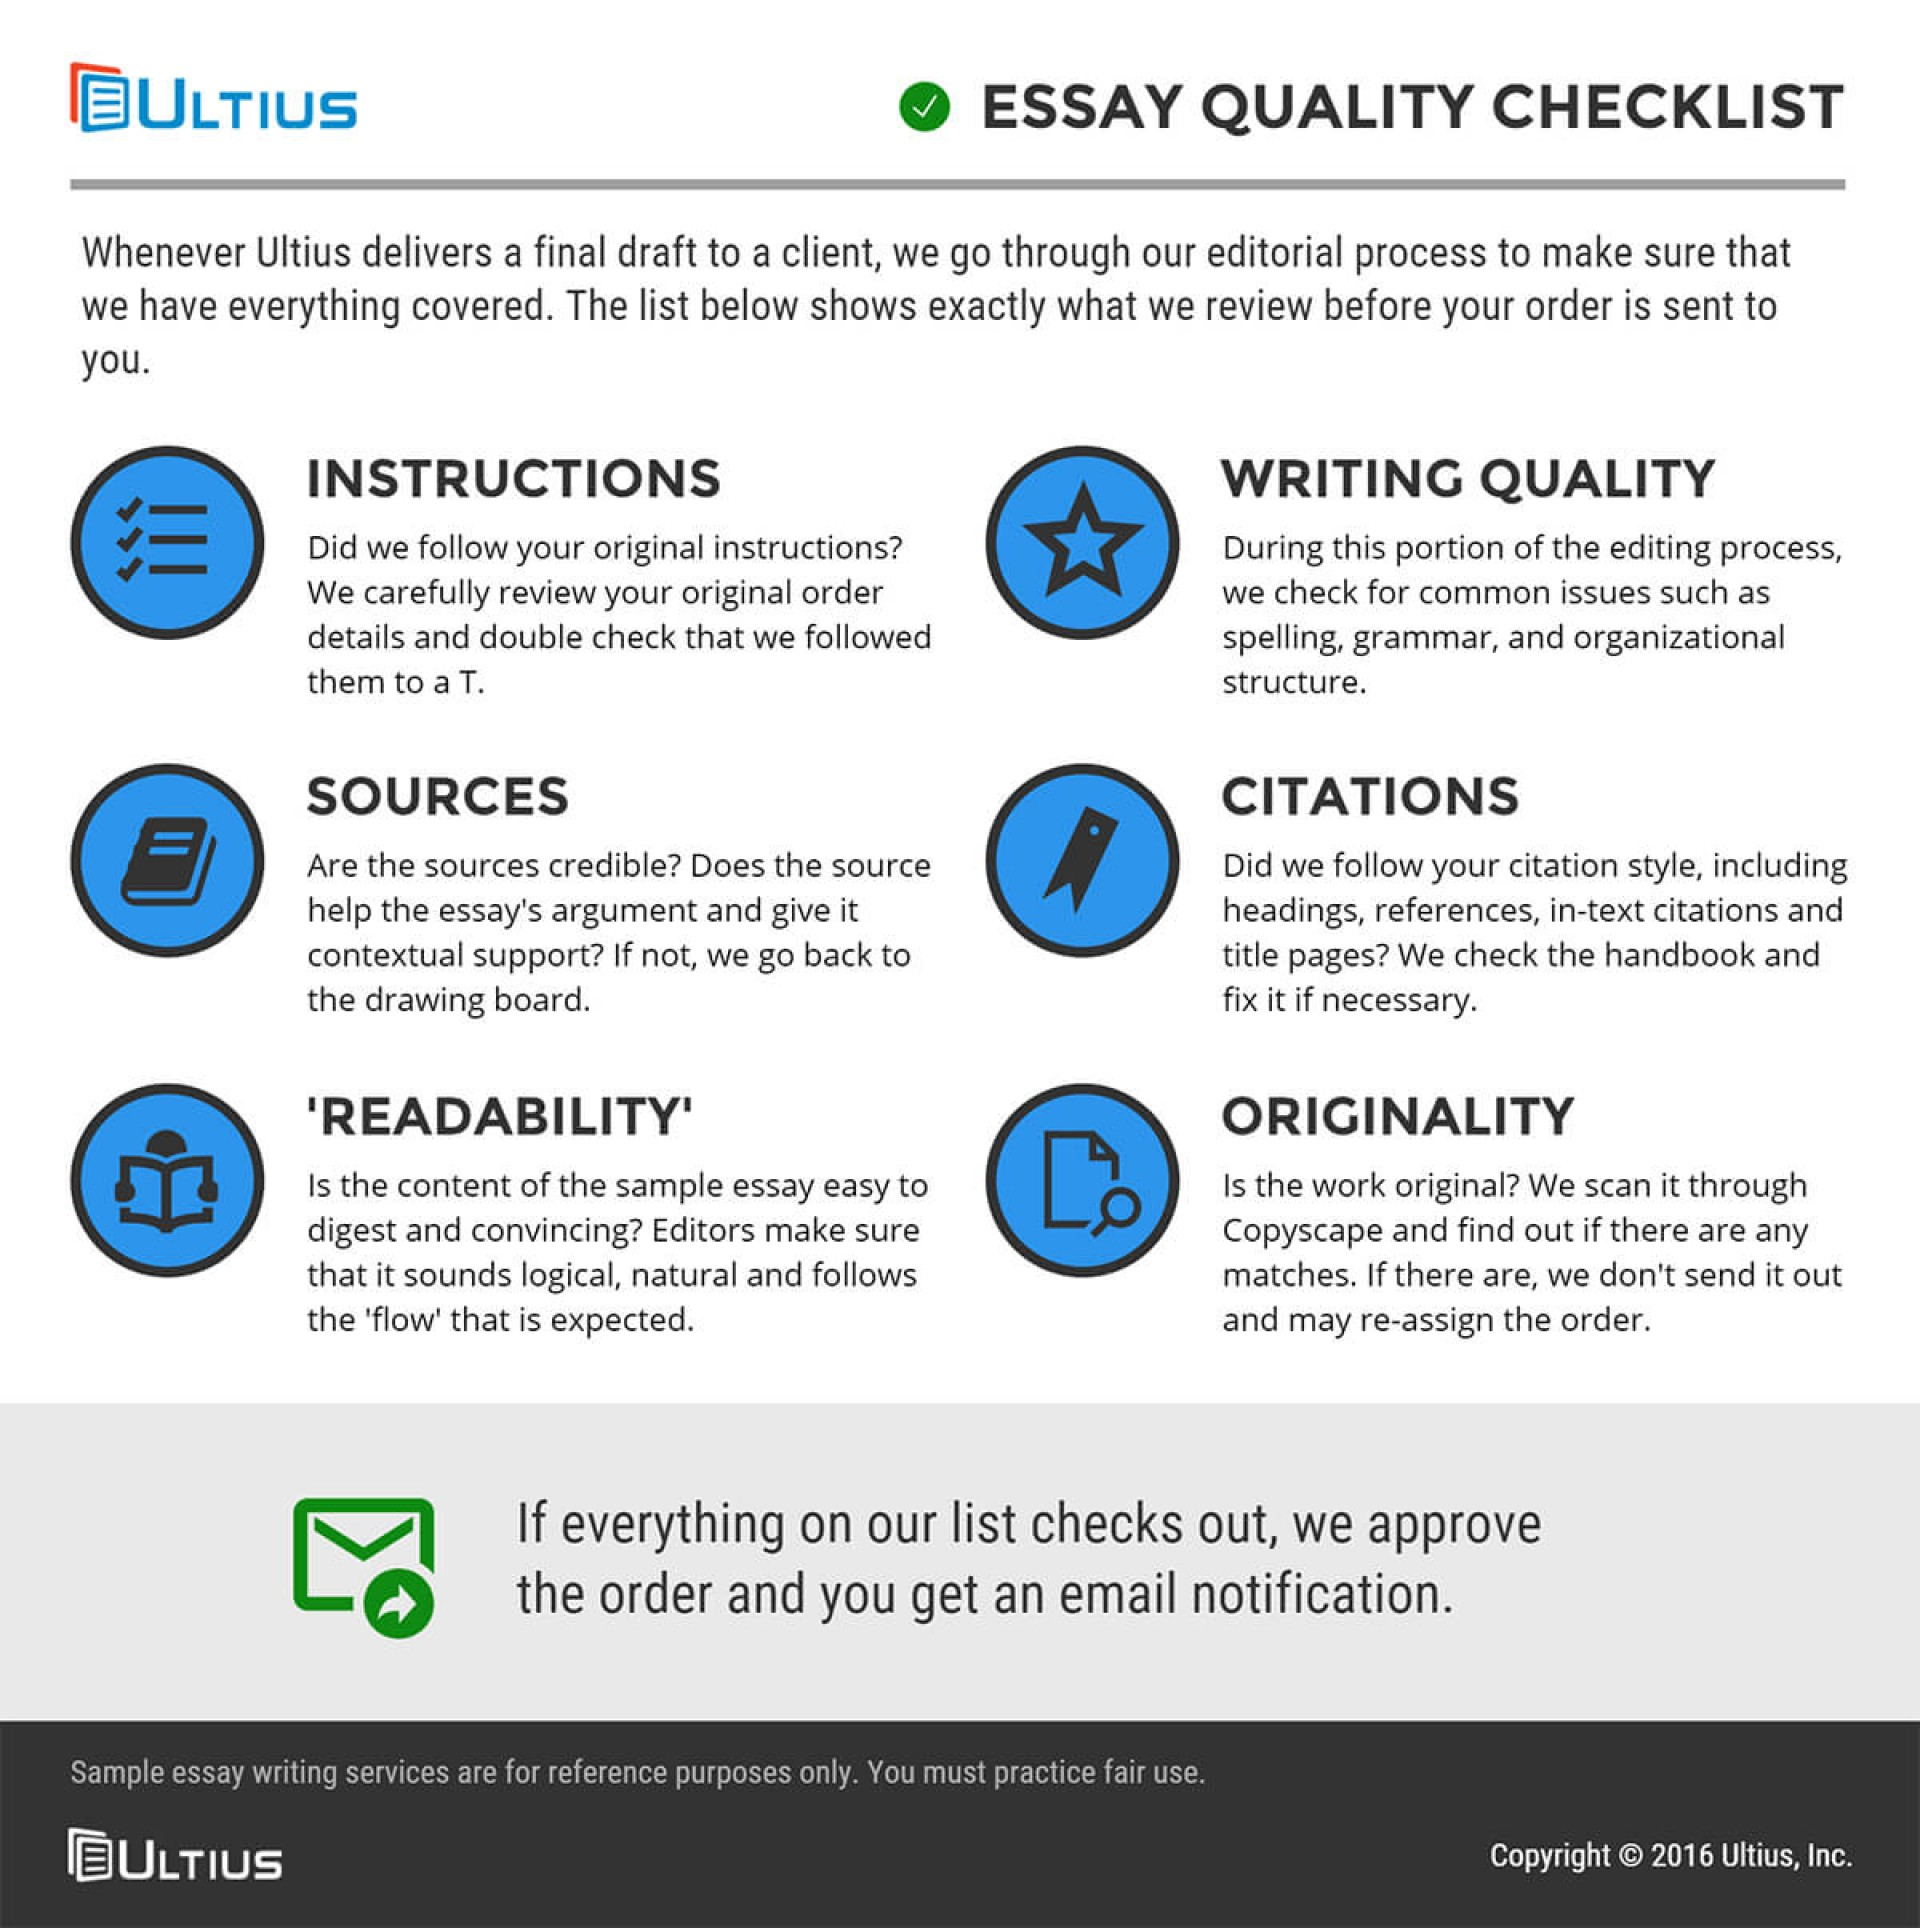 014 Essay Example Purchased Quality Checklist Dreaded Persuasive Definition And Examples Topics For Kids Rubric 1920